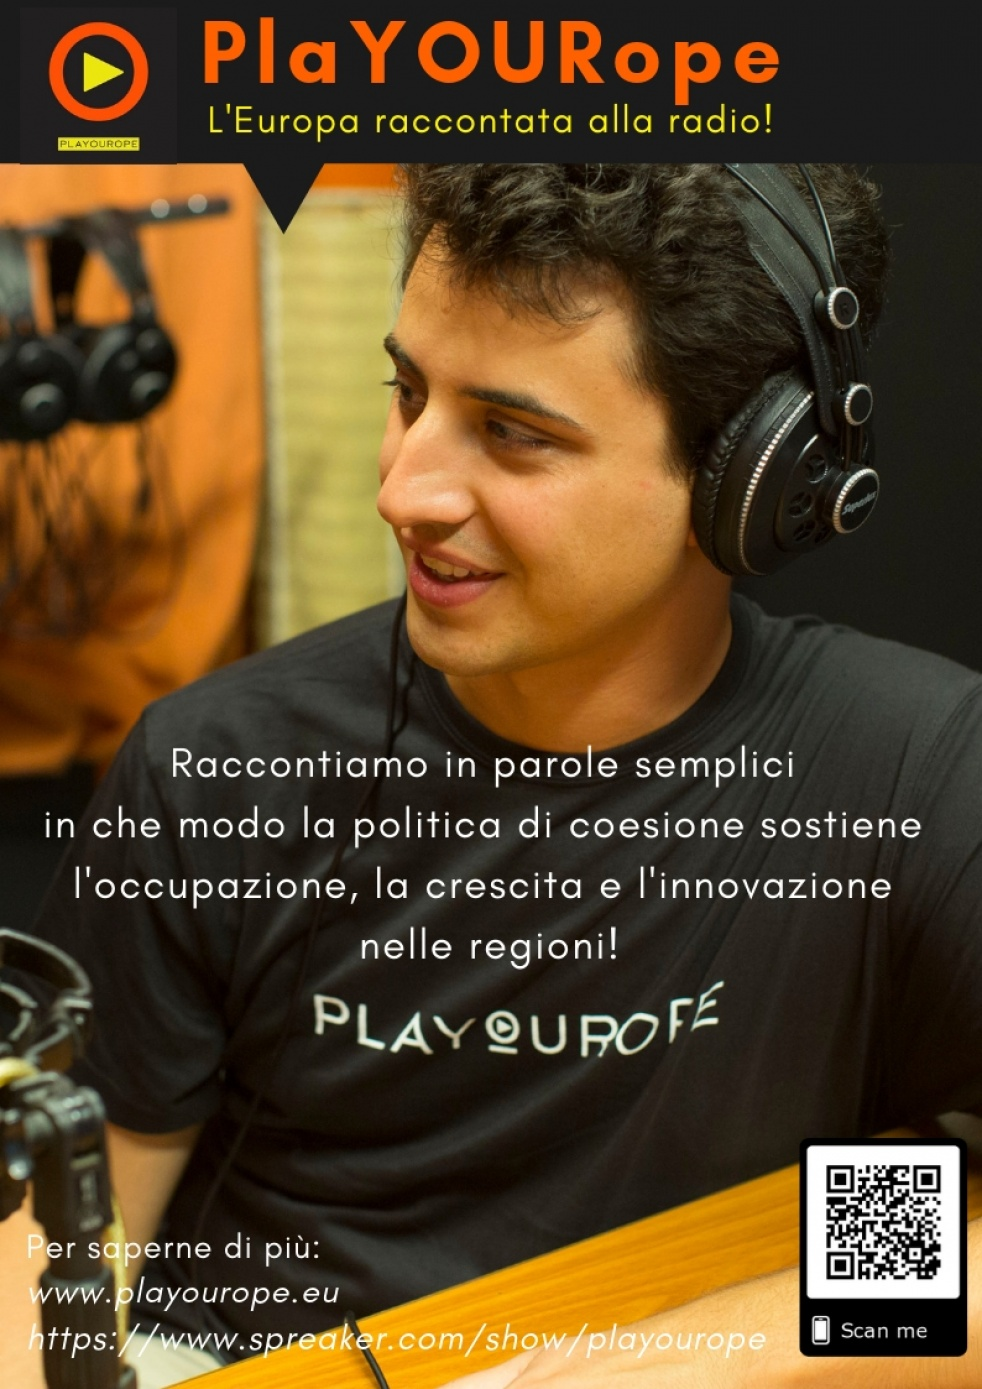 PlaYOURope - Cover Image